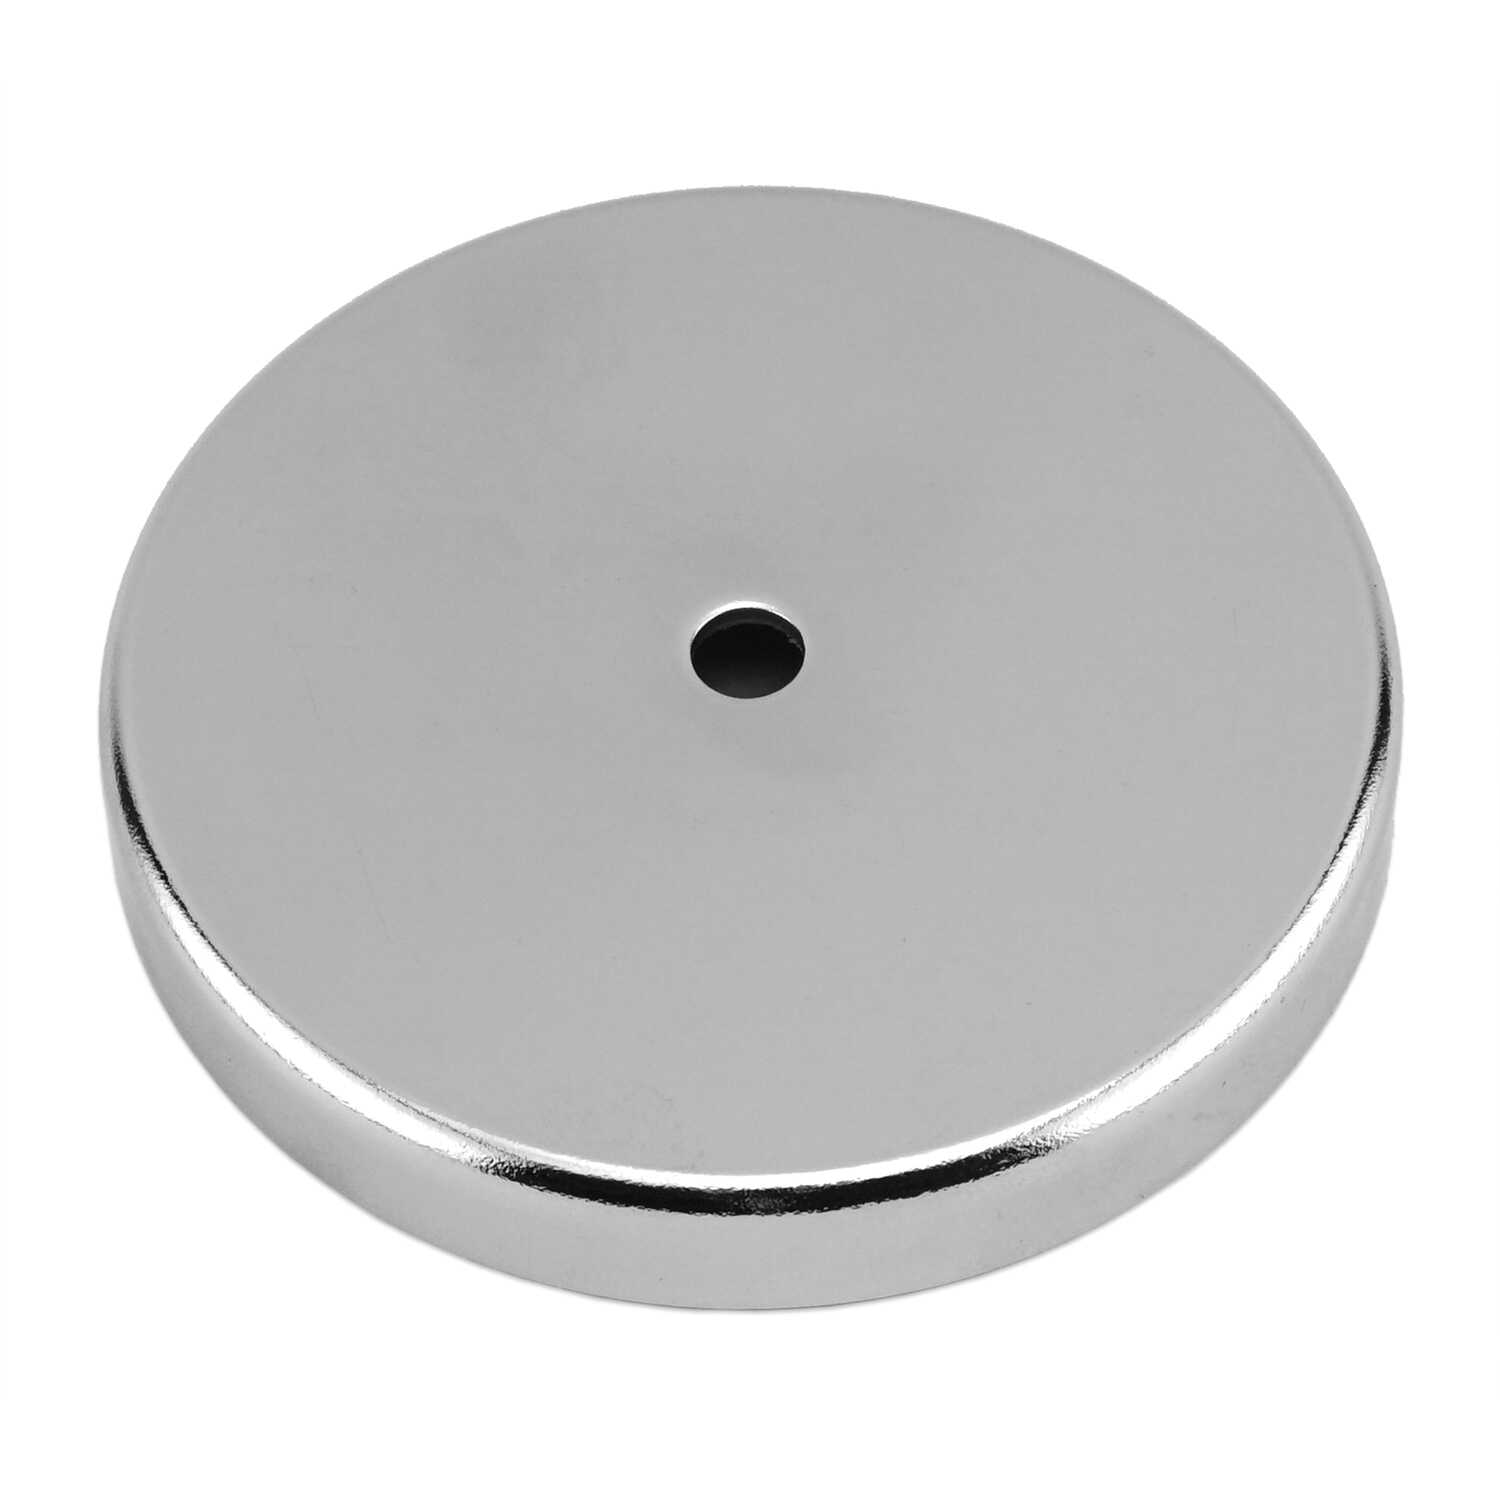 Master Magnetics  .283 in. Ceramic  Round Base Magnet  16 lb. pull 3.4 MGOe Silver  1 pc.